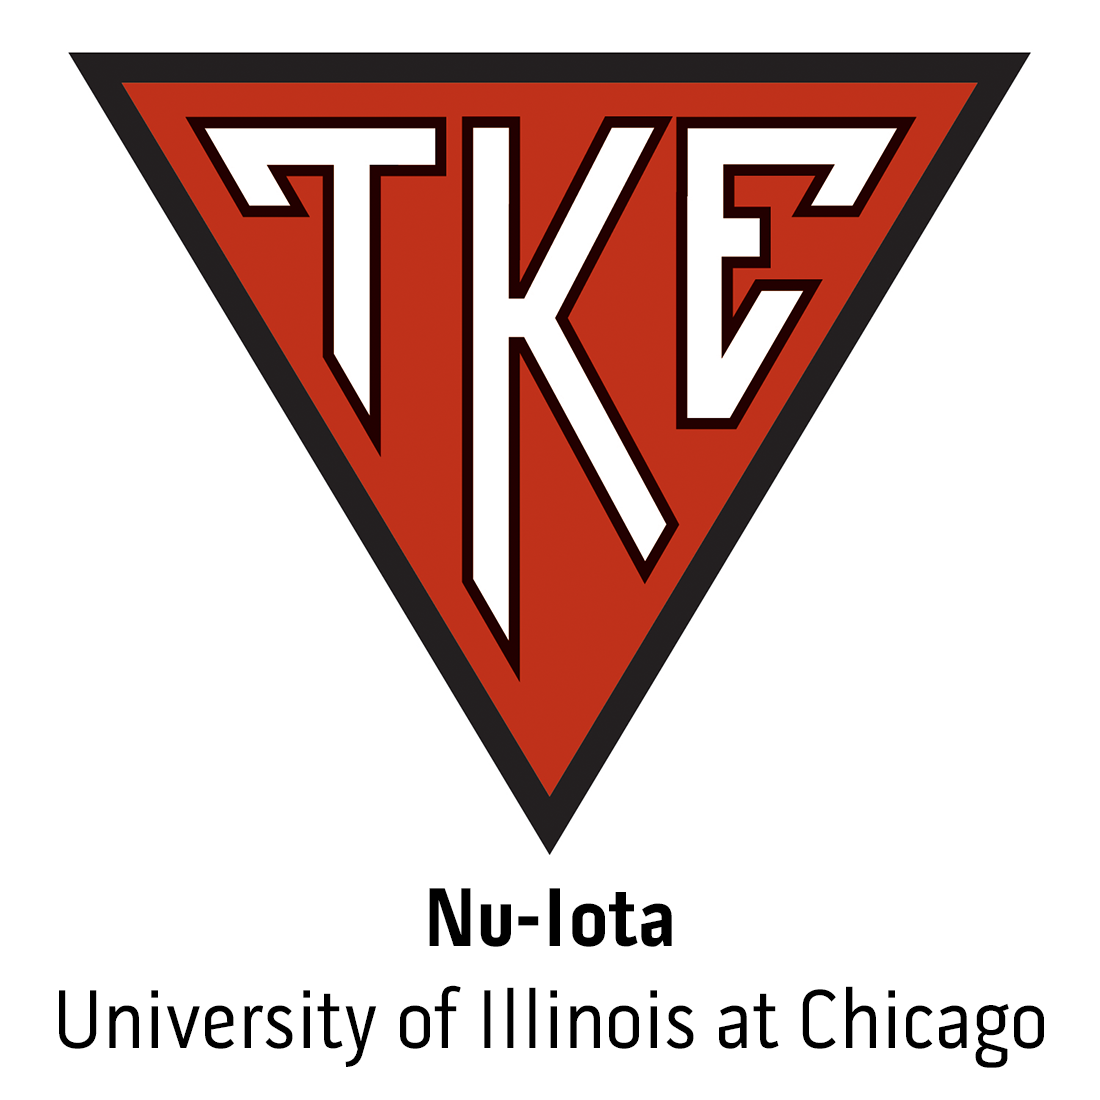 Nu-Iota Colony at University of Illinois at Chicago